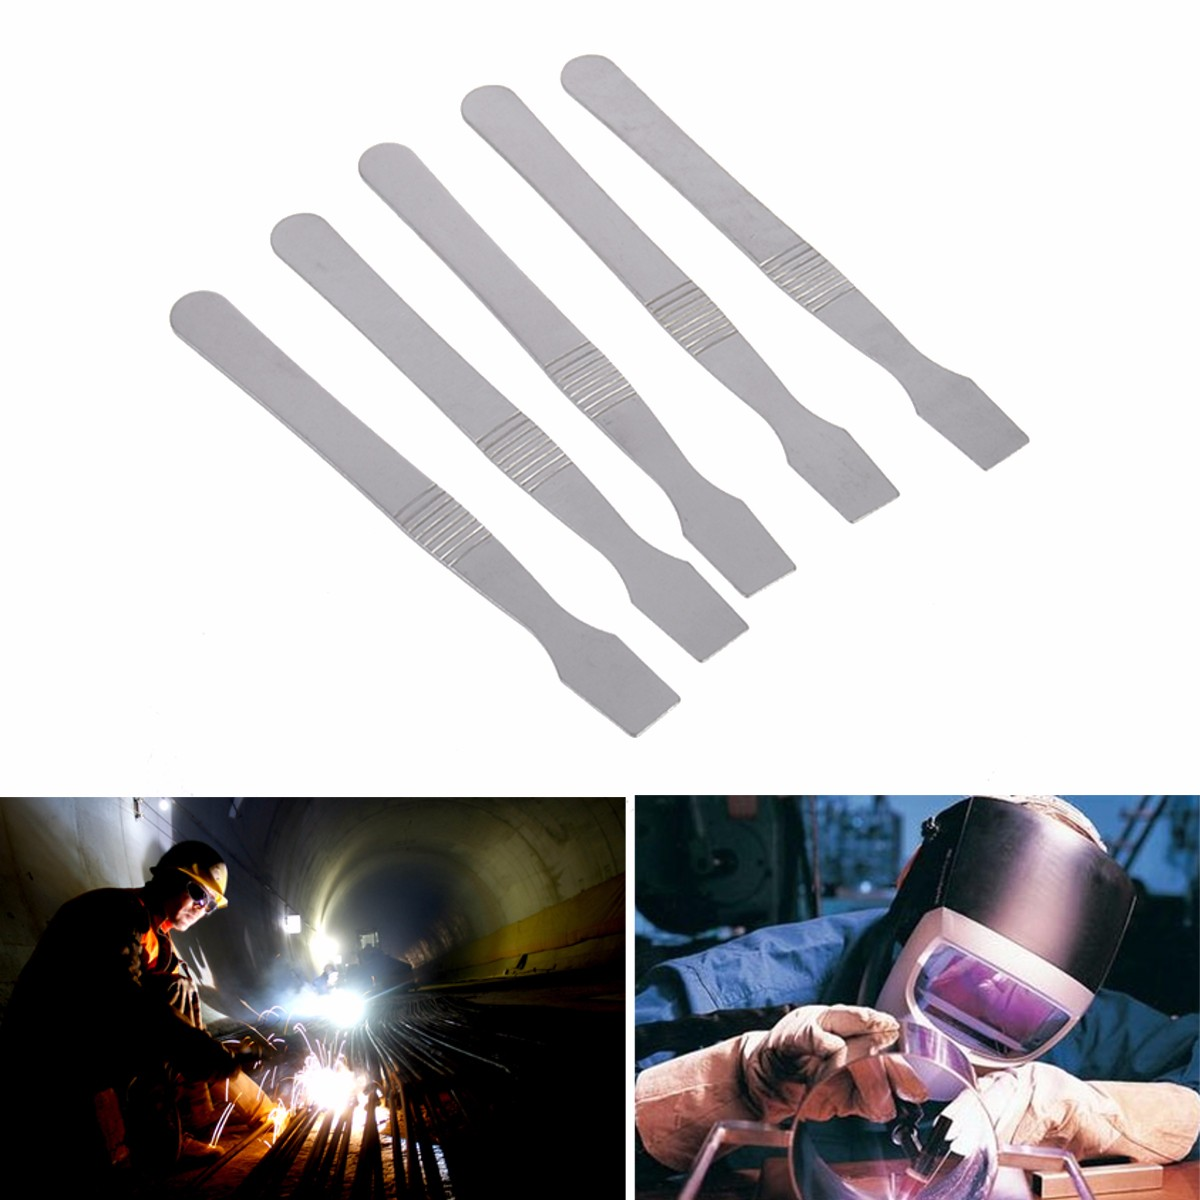 5pcs bga stainless steel solder scraper for soldering rework assist